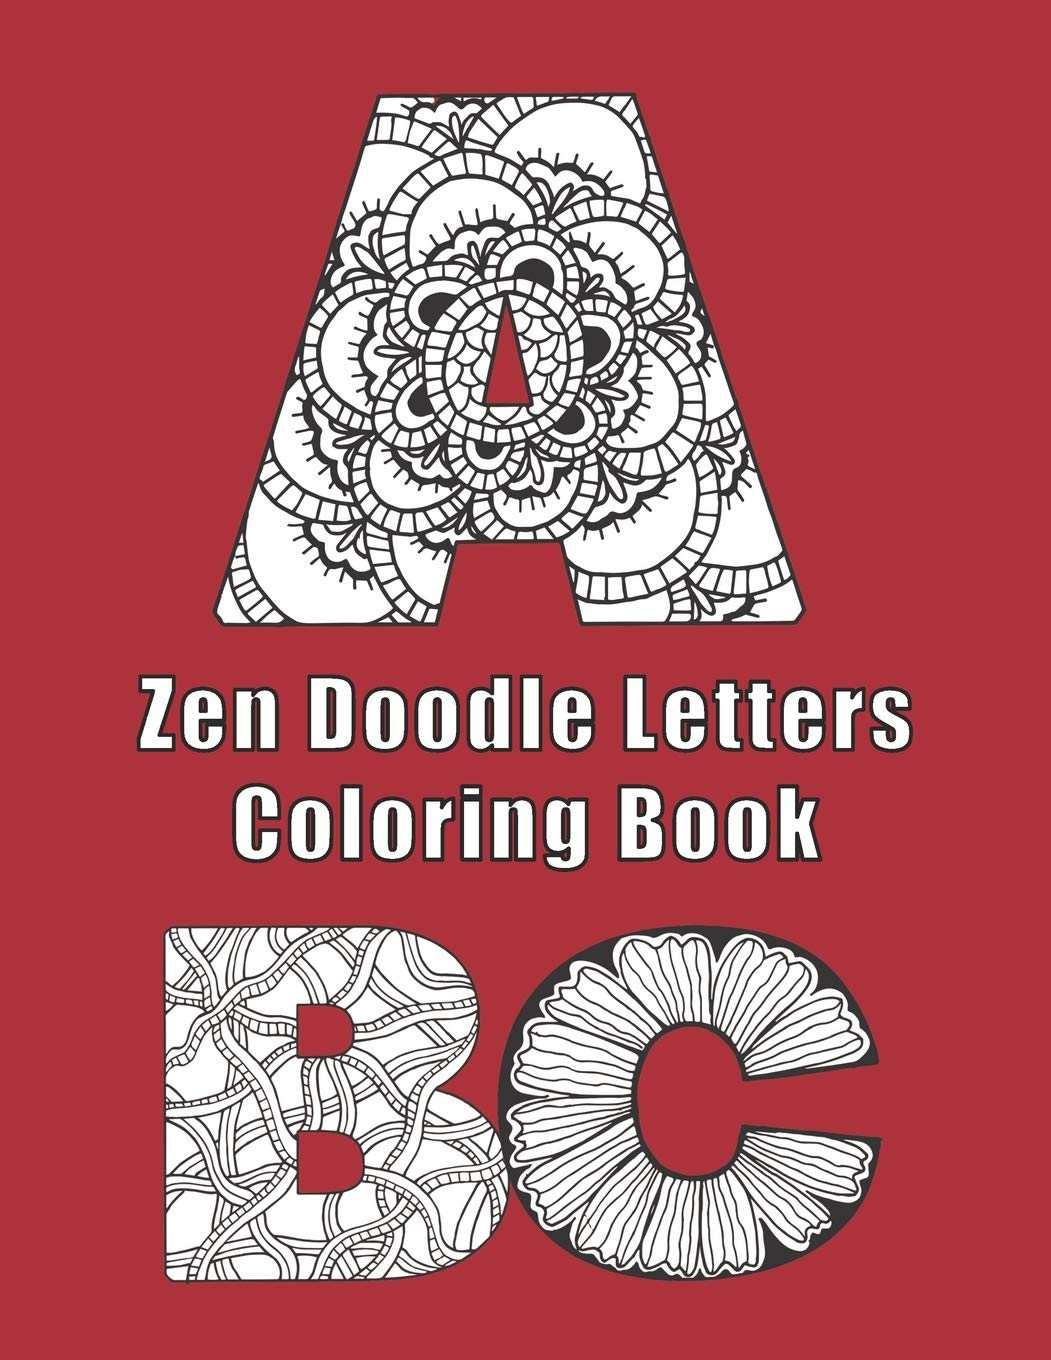 Amazon Com Zen Doodle Letters Coloring Book Alphabet Letter Coloring Sheets With Both Upper And Lower Case A Z 9798693715493 Furrow Lee Books